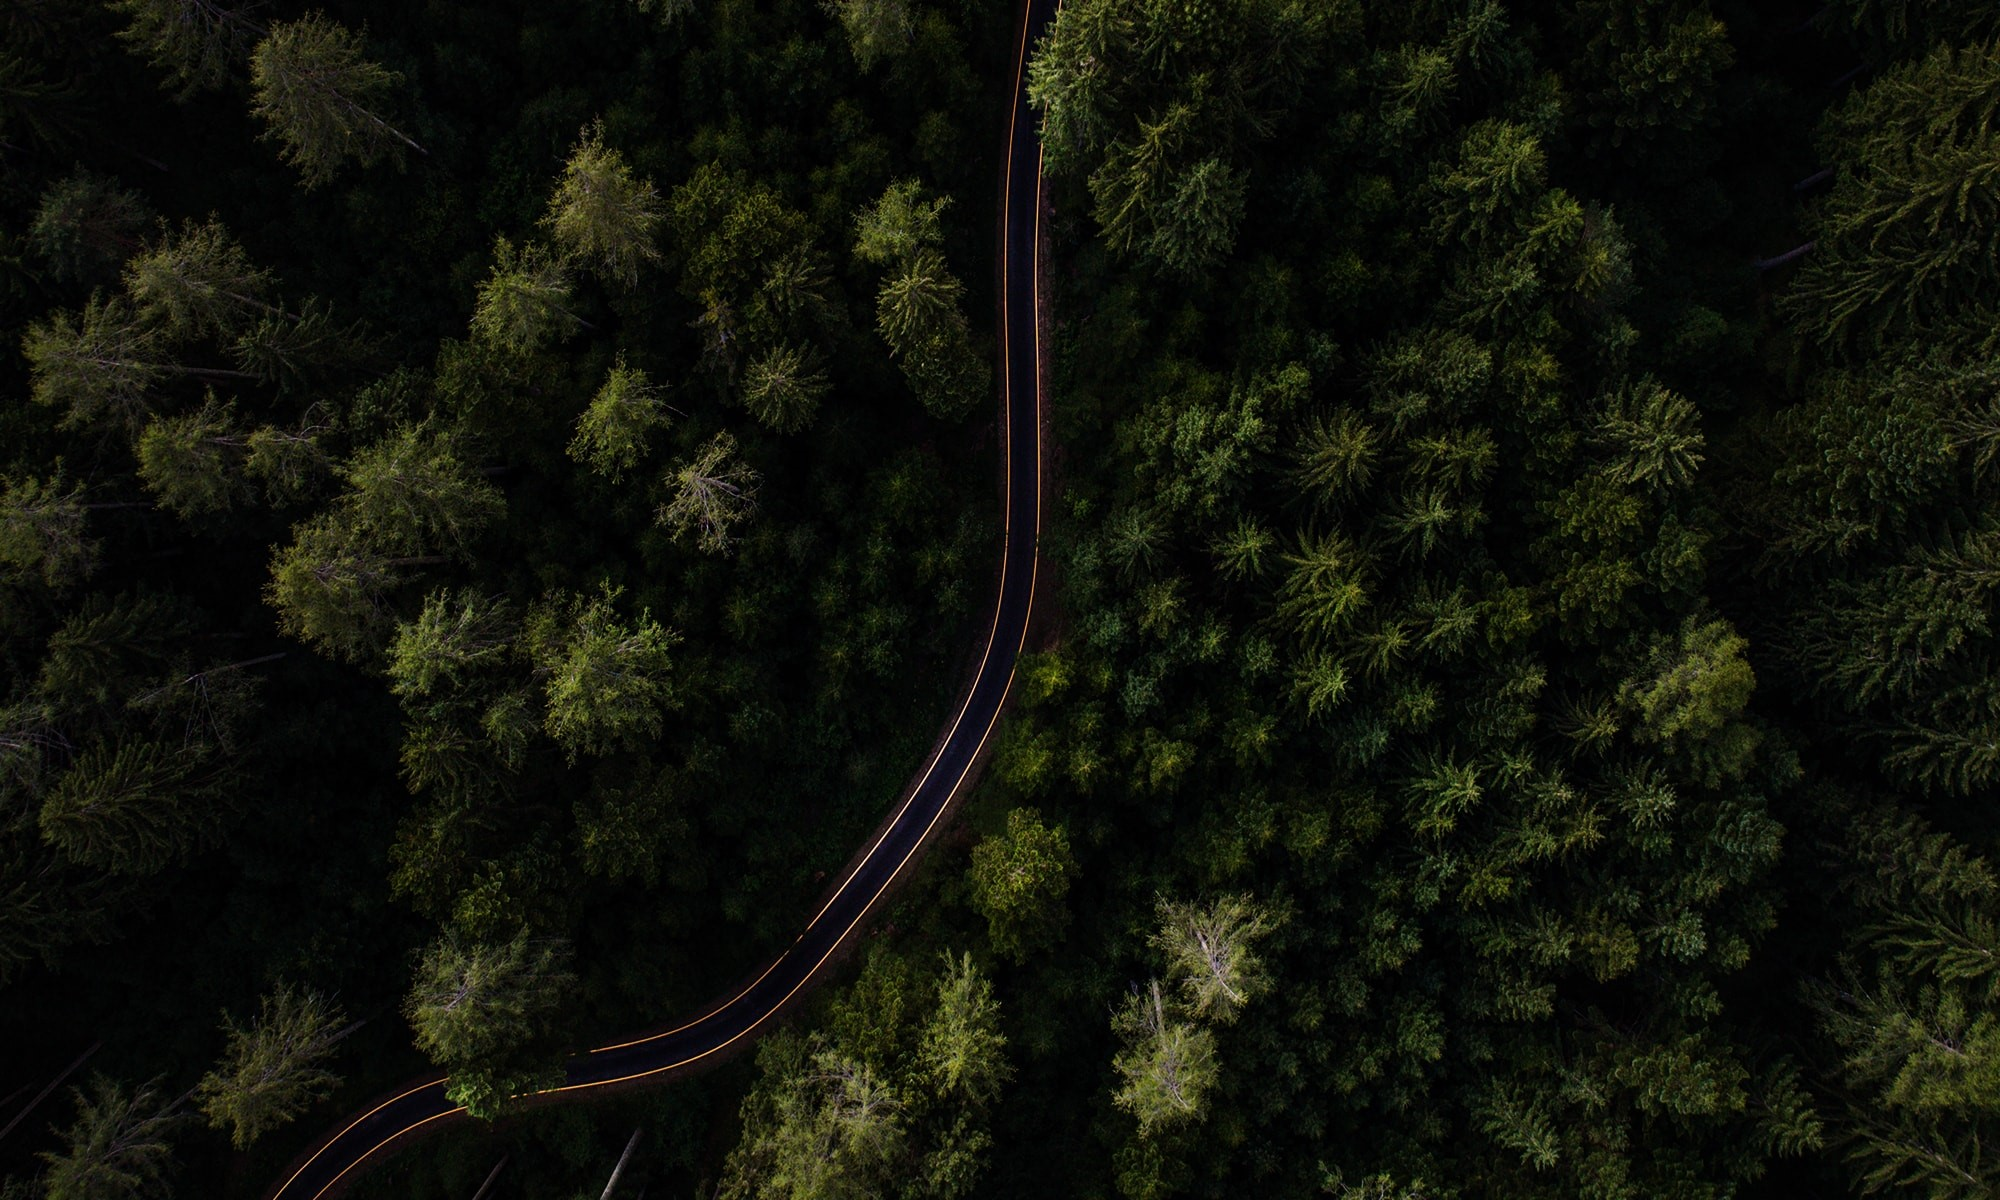 Forest with a winding road